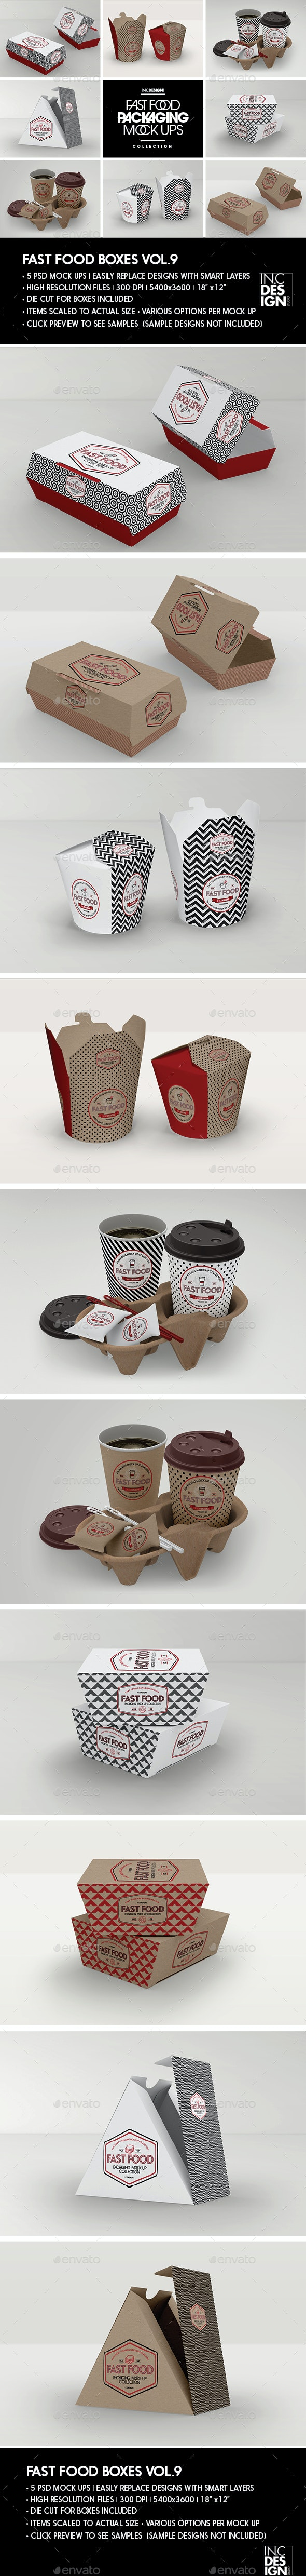 Fast Food Boxes Vol.9: Take Out Packaging Mock Ups - Food and Drink Packaging